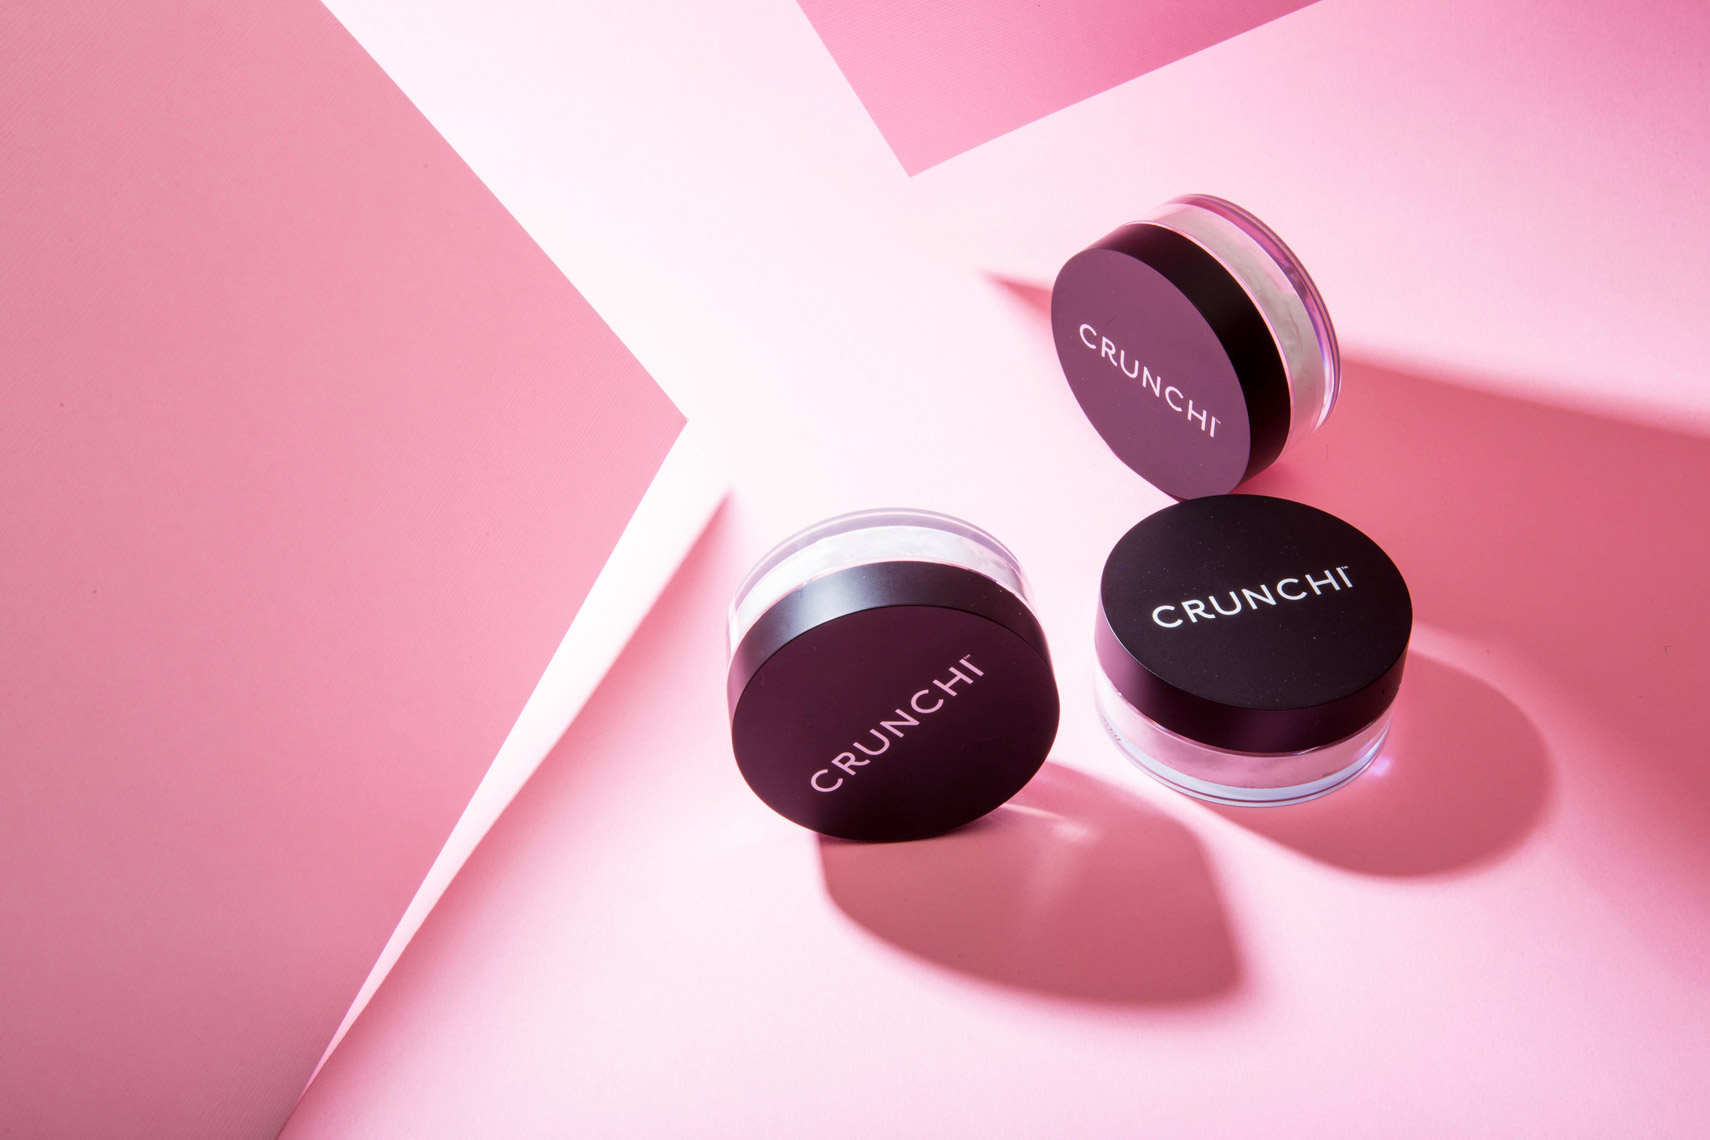 Crunchi, Makeup, Cosmetics, Makeup Photography, Cosmetic Photography, Creative Still, Jewelry, fashion jewelry, jewelry photography, product photography, product photo, studio photography, Ian Jacob, Ian Jacob Photography